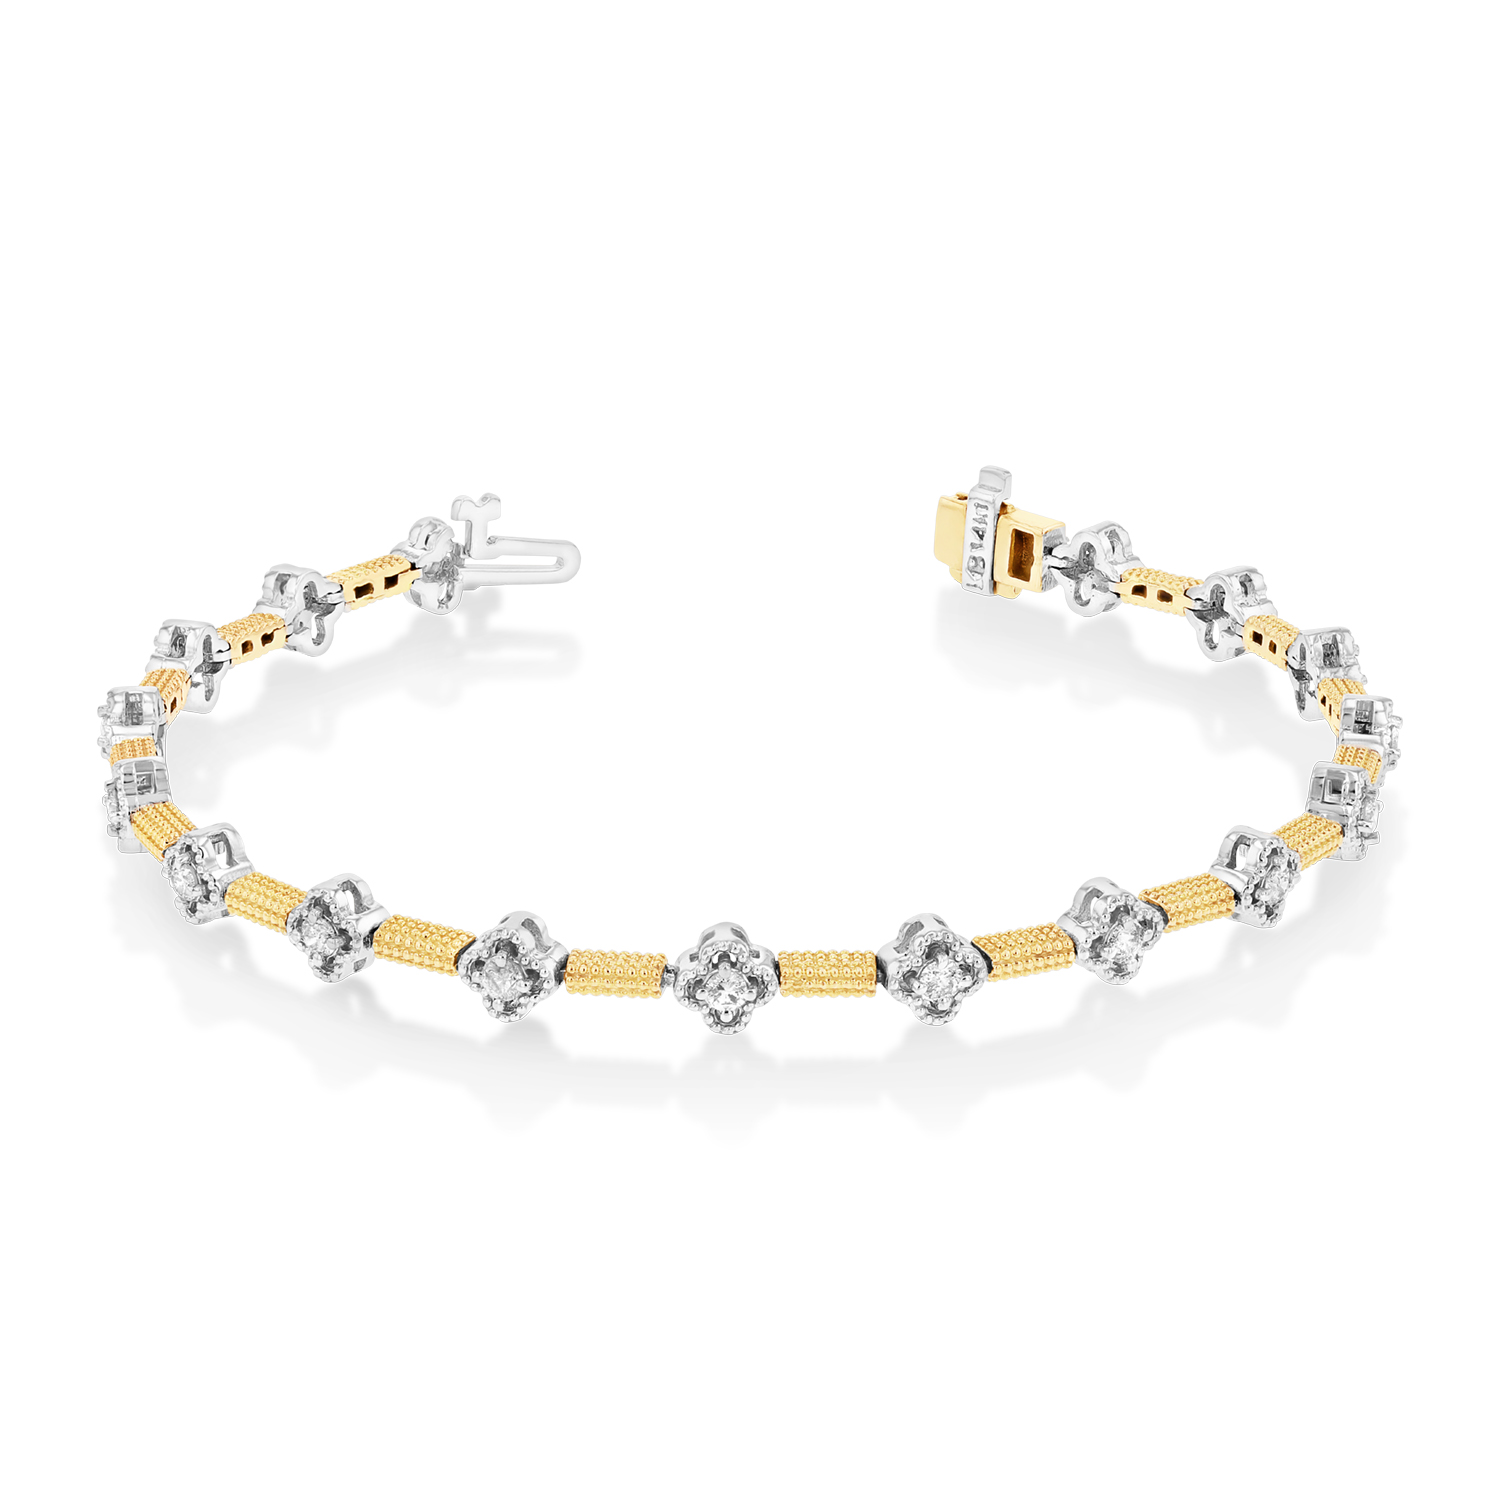 View 0.75ctw Diamond Bracelet in 14k TT